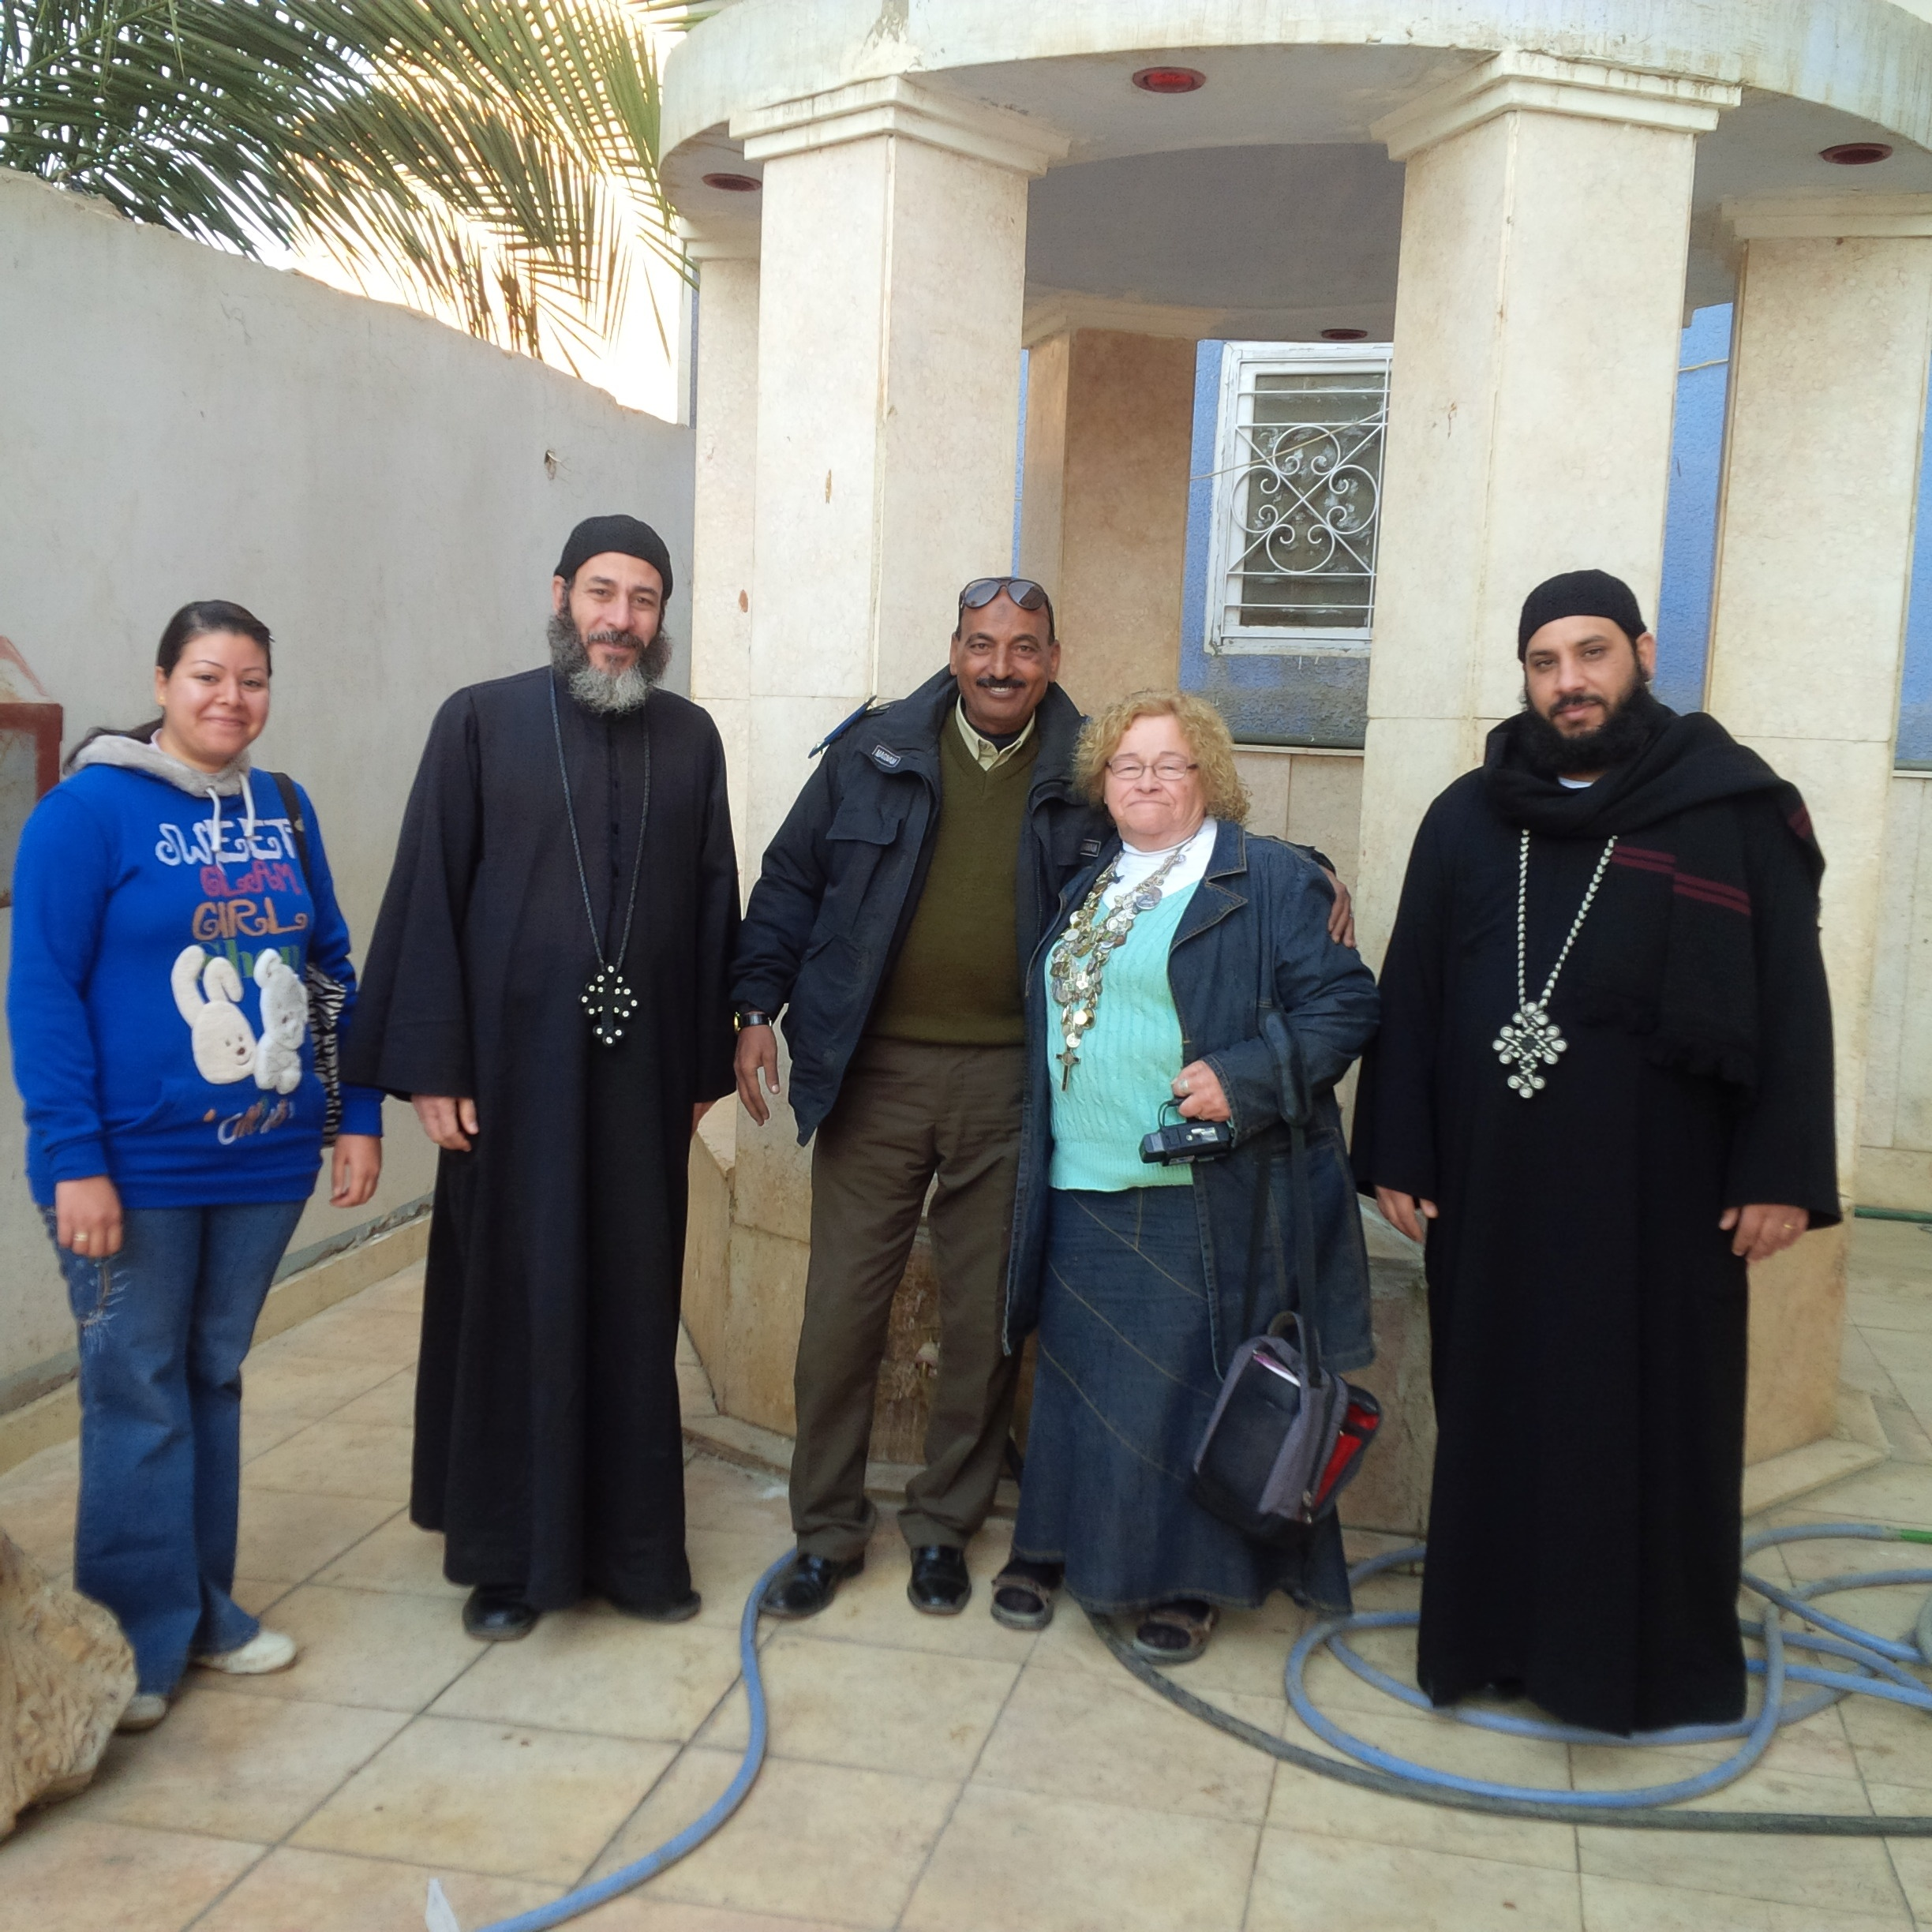 Friend, Priests AND SECURITY by the well in Church Courtyard. Our Lady had Jesus get water.